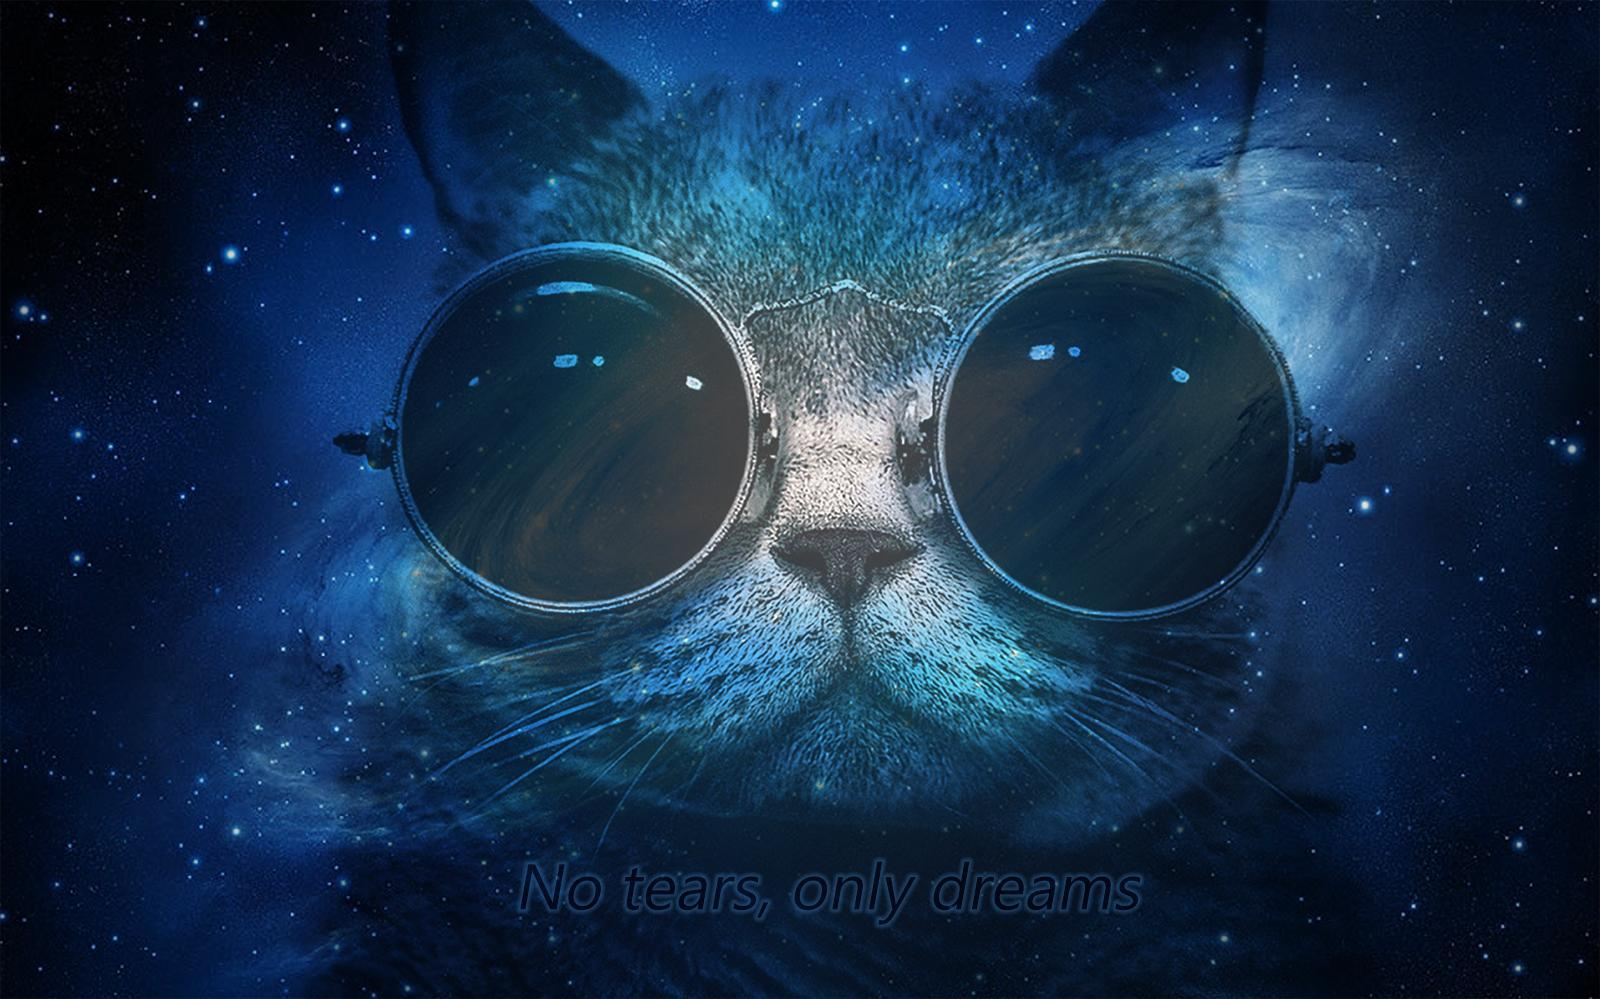 Morpheous Cat goes deep space Wallpapers Wallpapers Pictures 1600x999